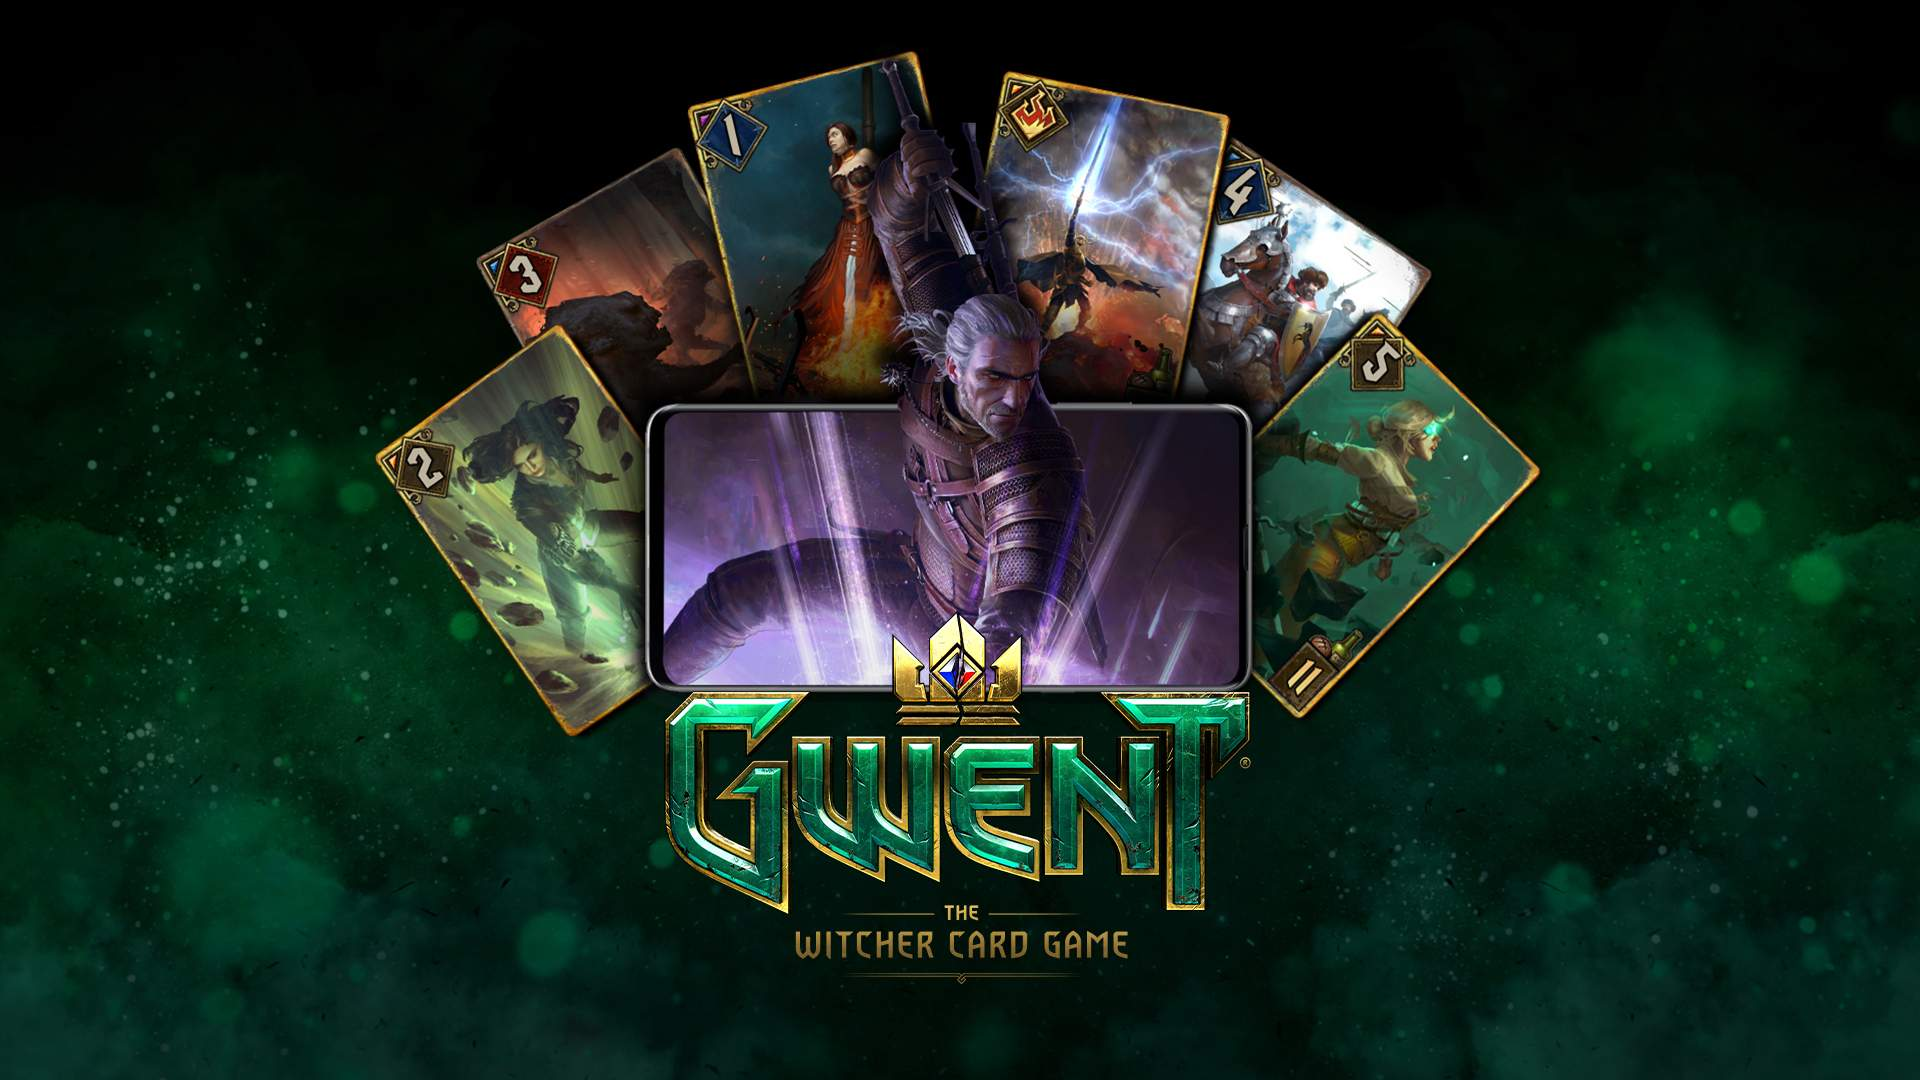 GWENT: The Witcher Card Game Update 6.1 Is Now Available